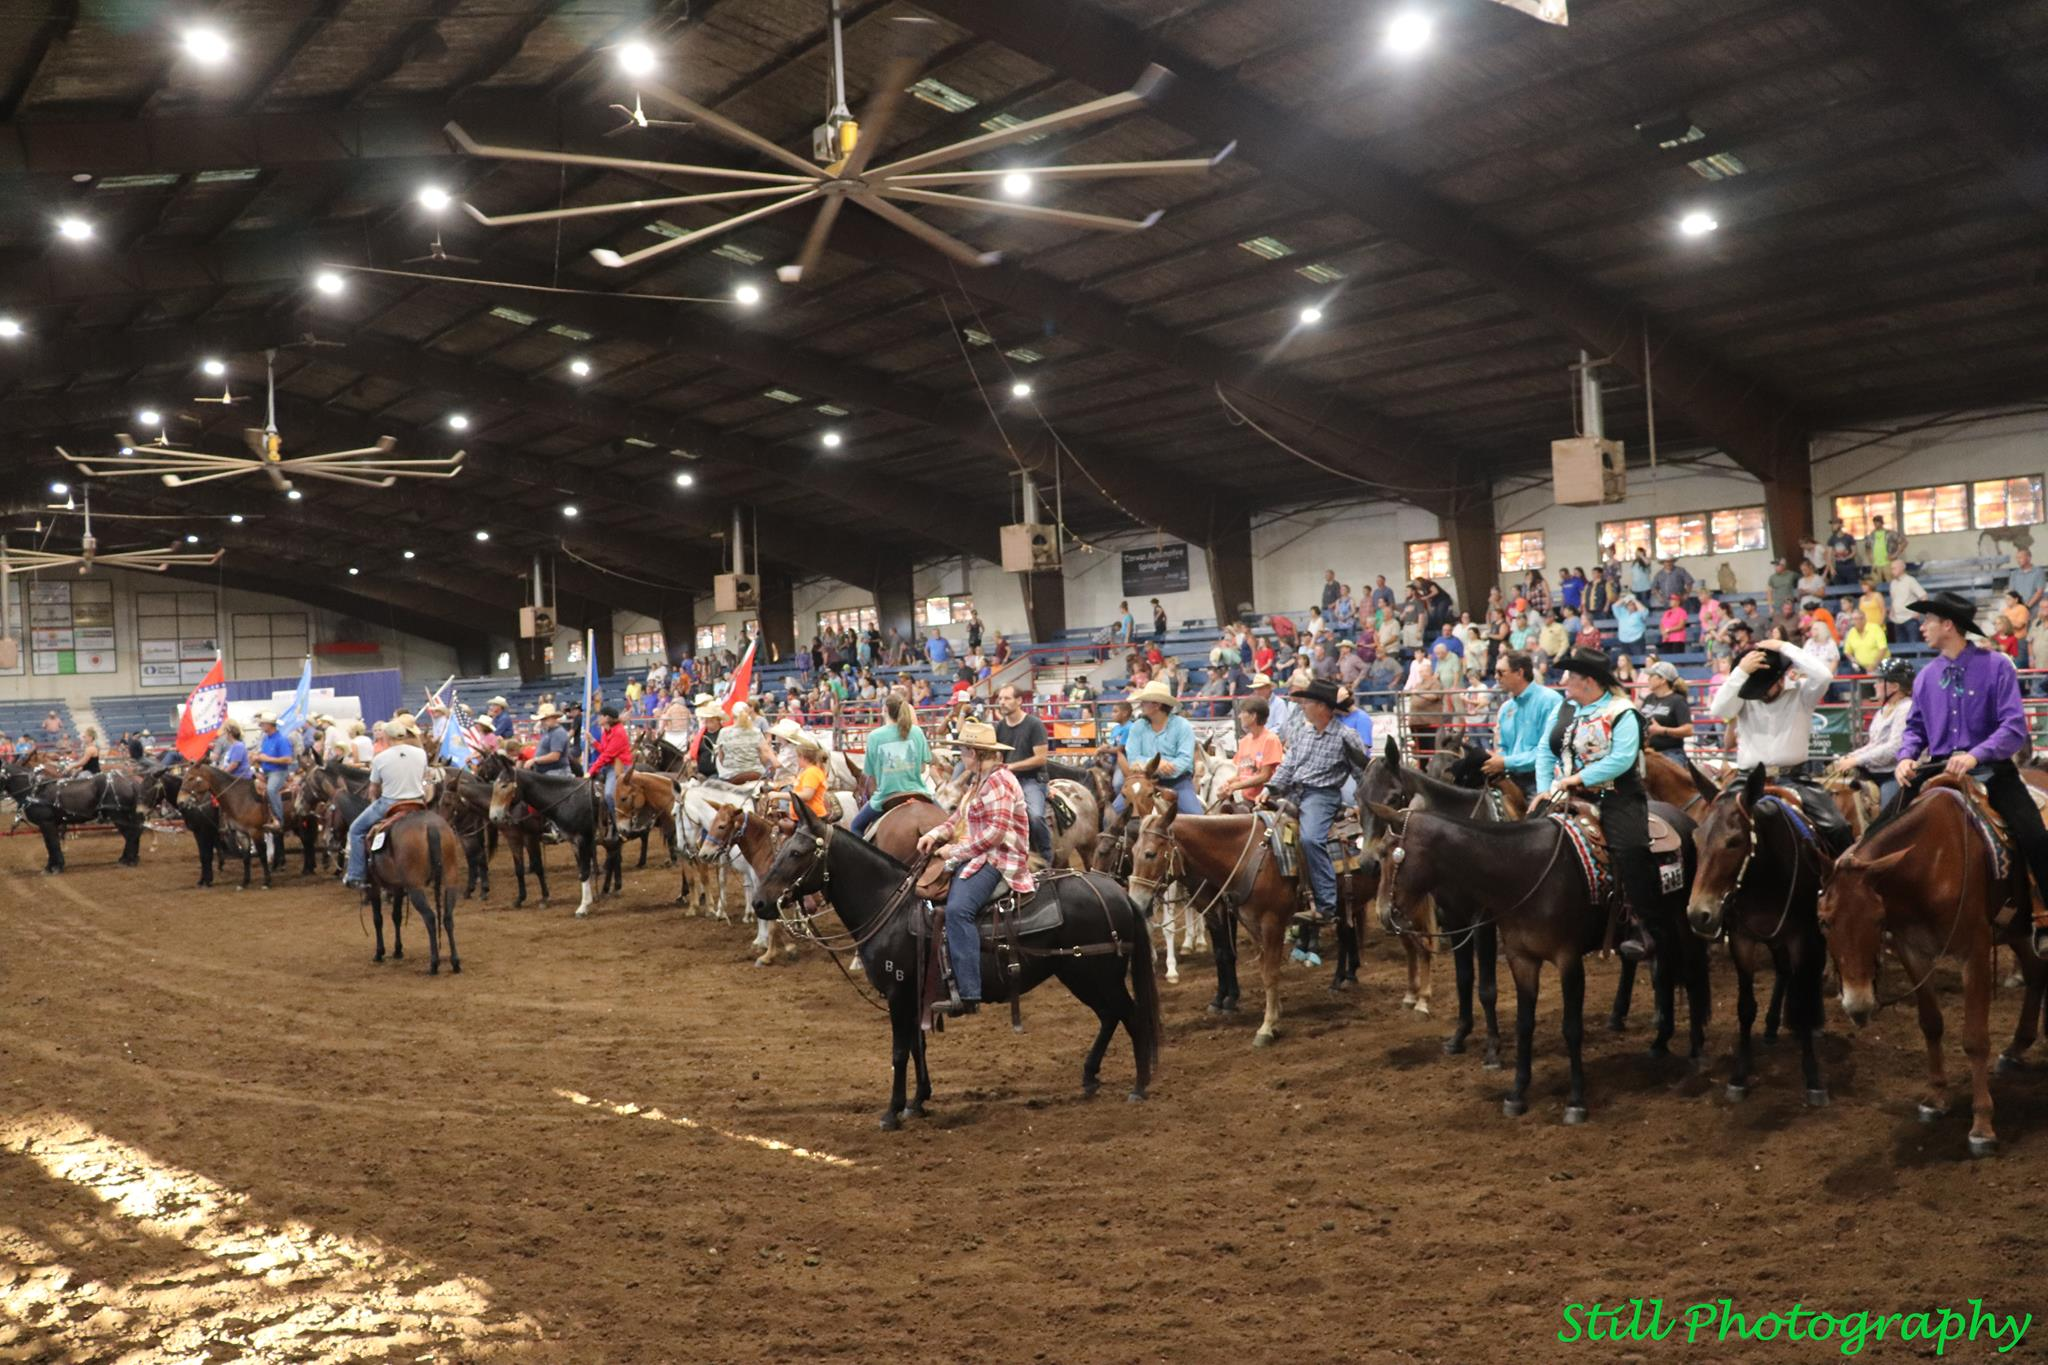 The Grand Entry at Ozark Mule Days